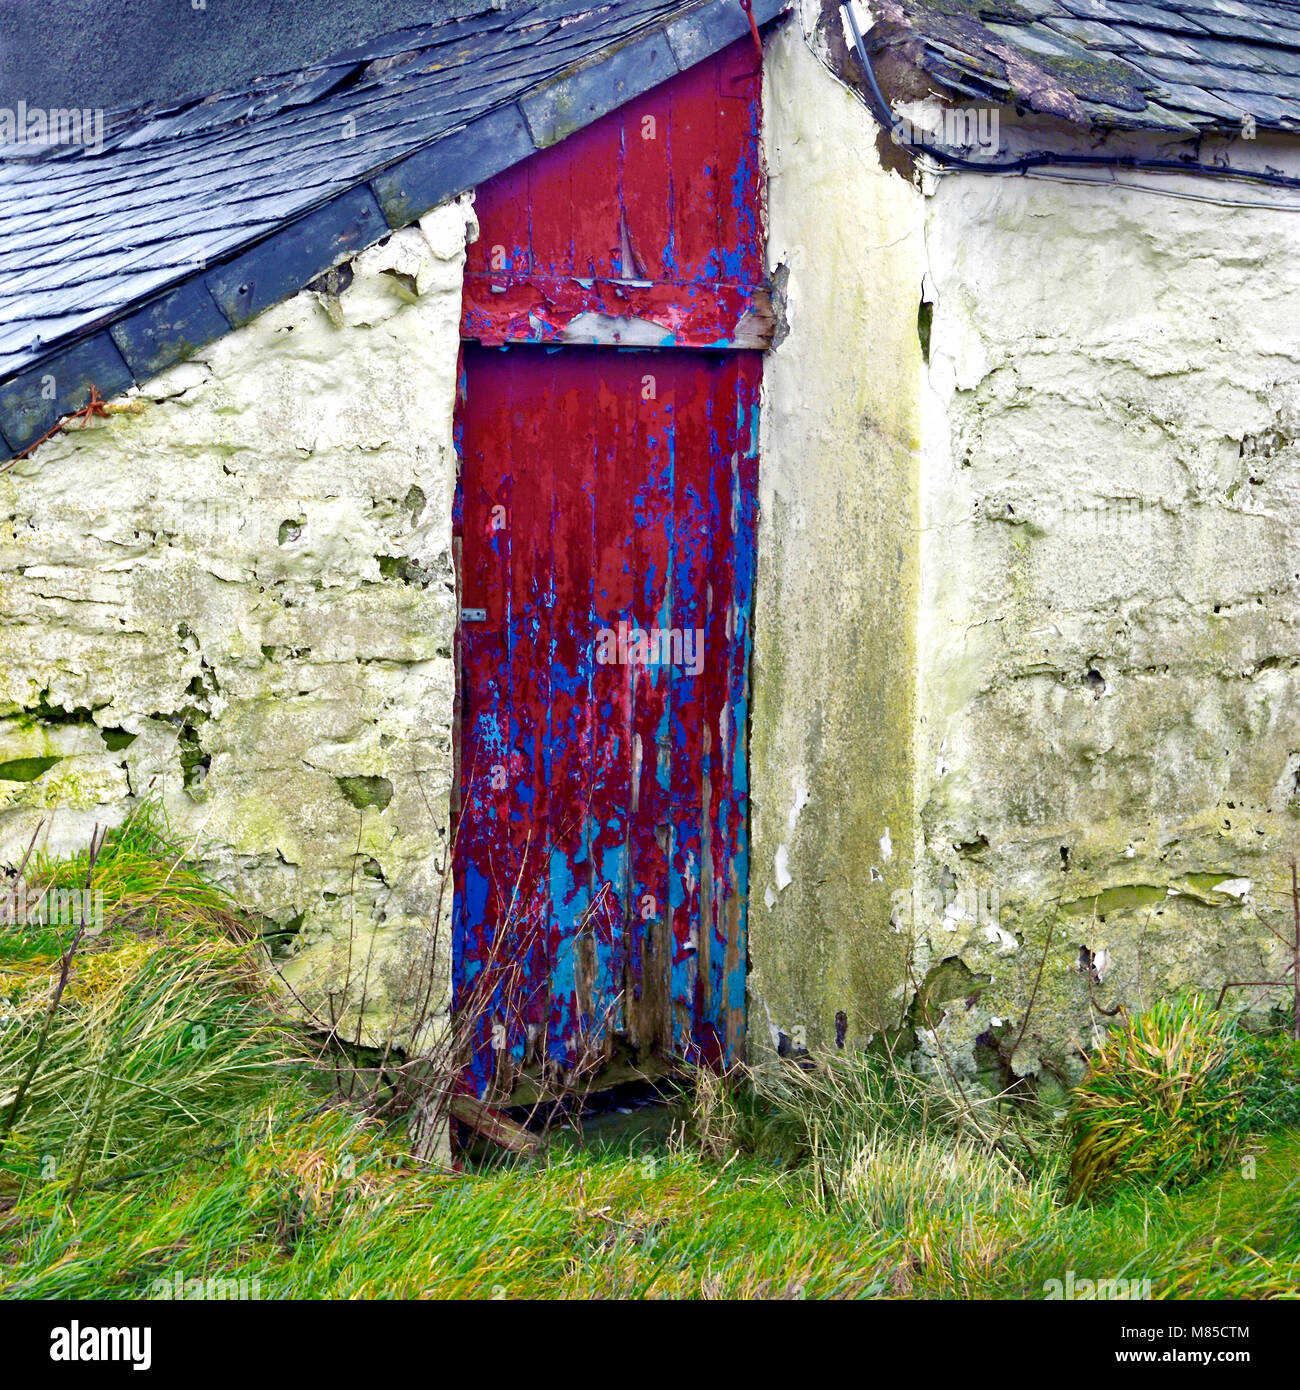 The vivid red door of a derelict farmhouse stands in sharp contrast to the surrounding green landscape of Denbigh - Stock Image